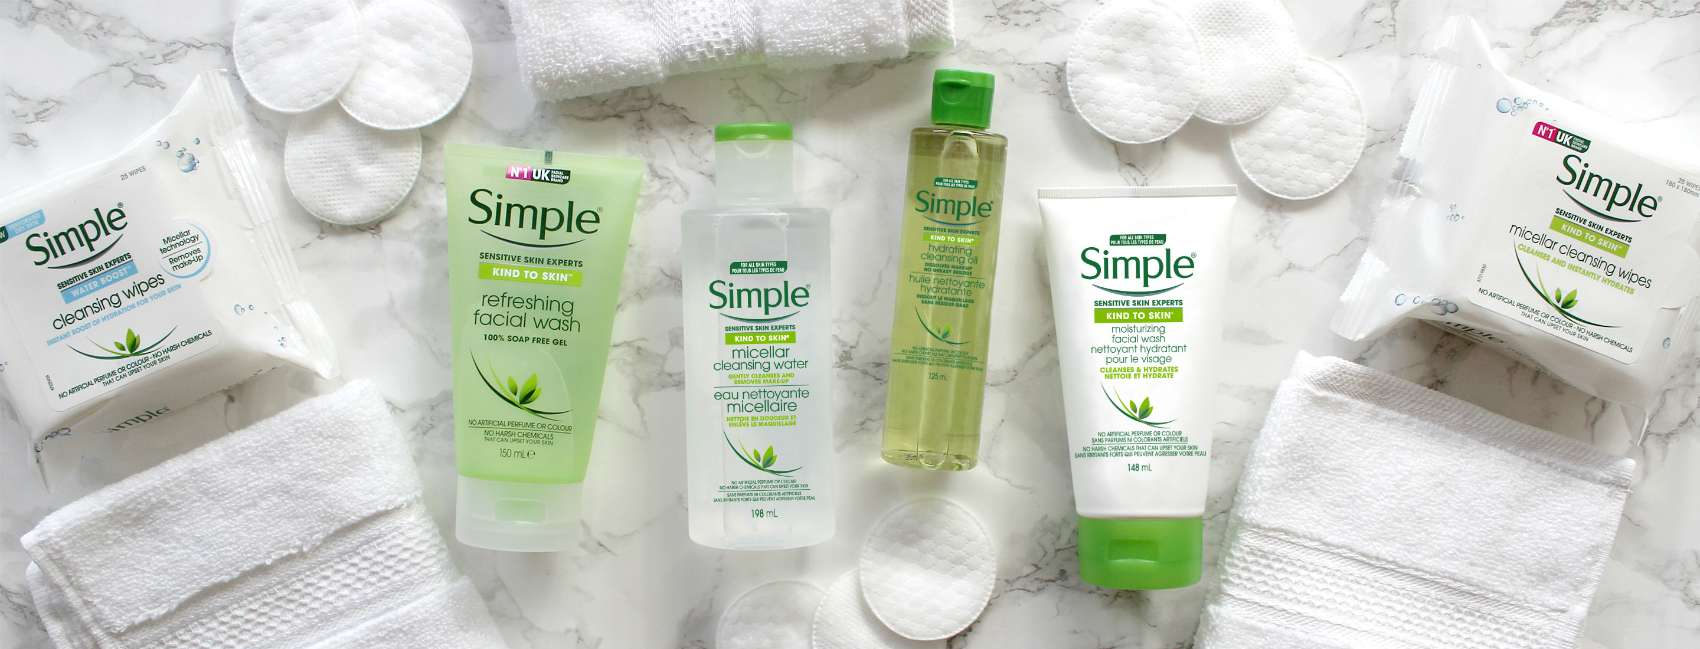 An image of Simple Facial cleansers